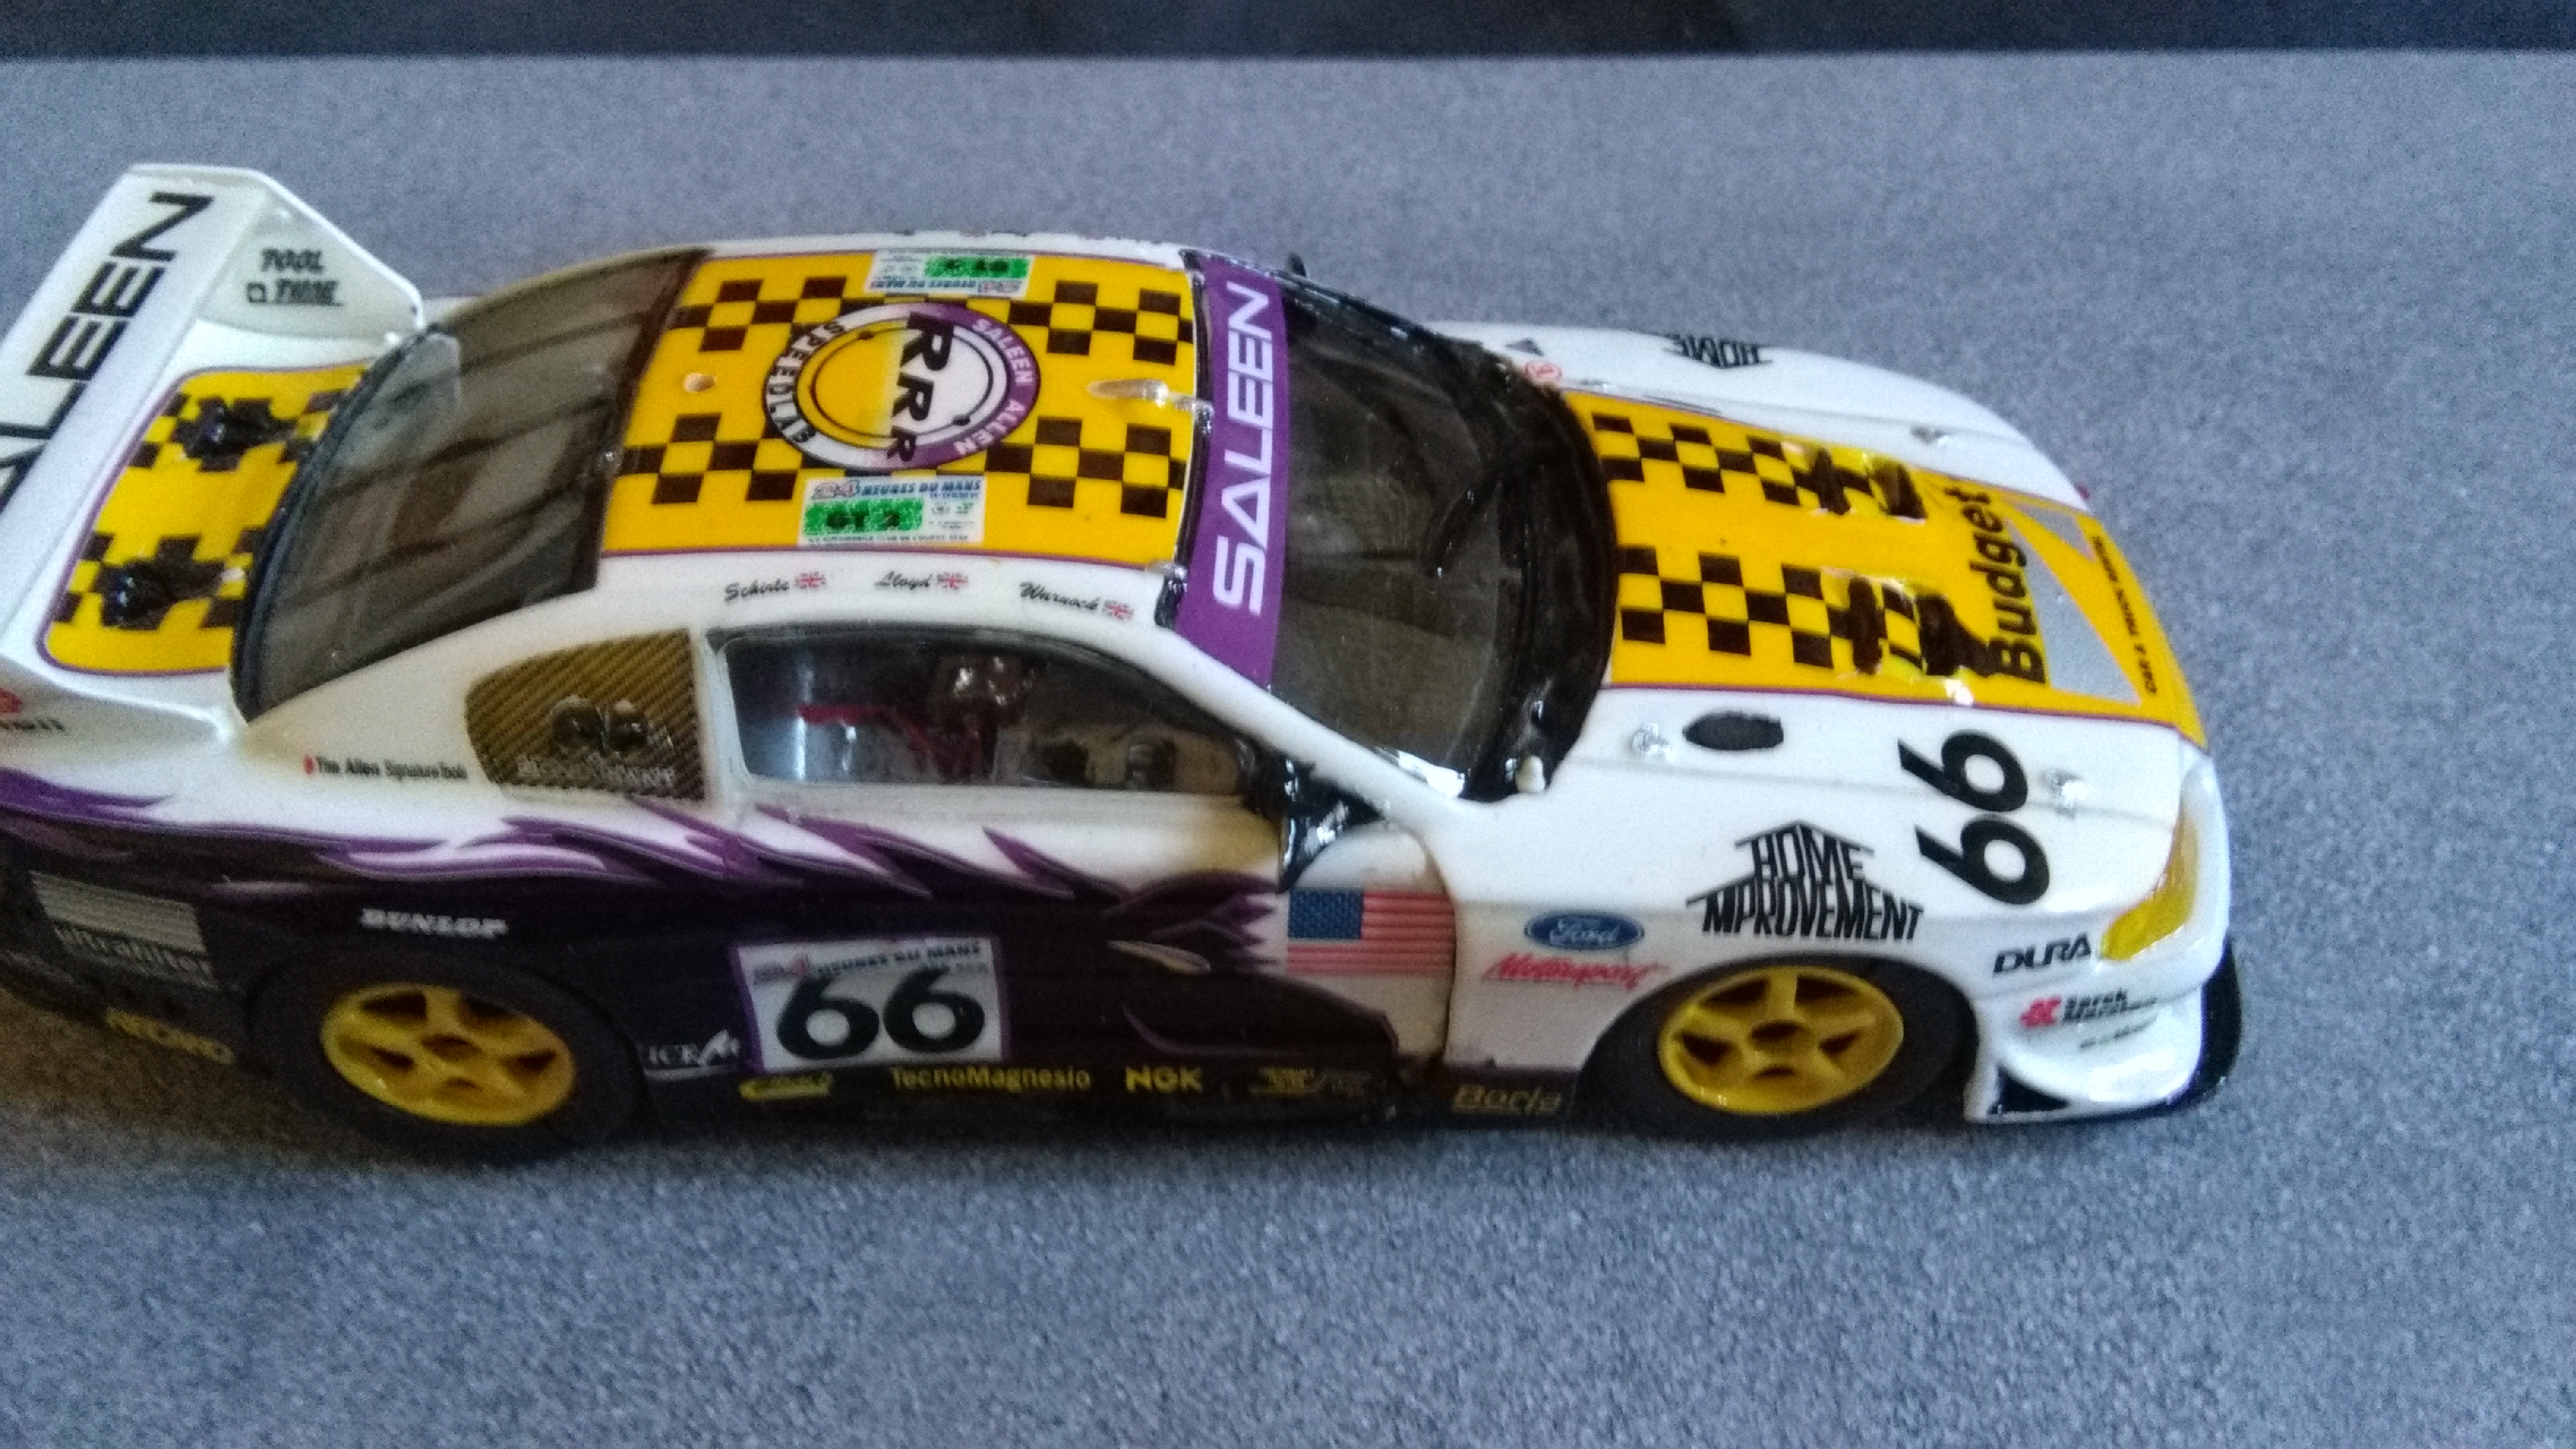 Mustang Saleen Le Mans 1997 #66 (not me) 249760IMG20170713190215